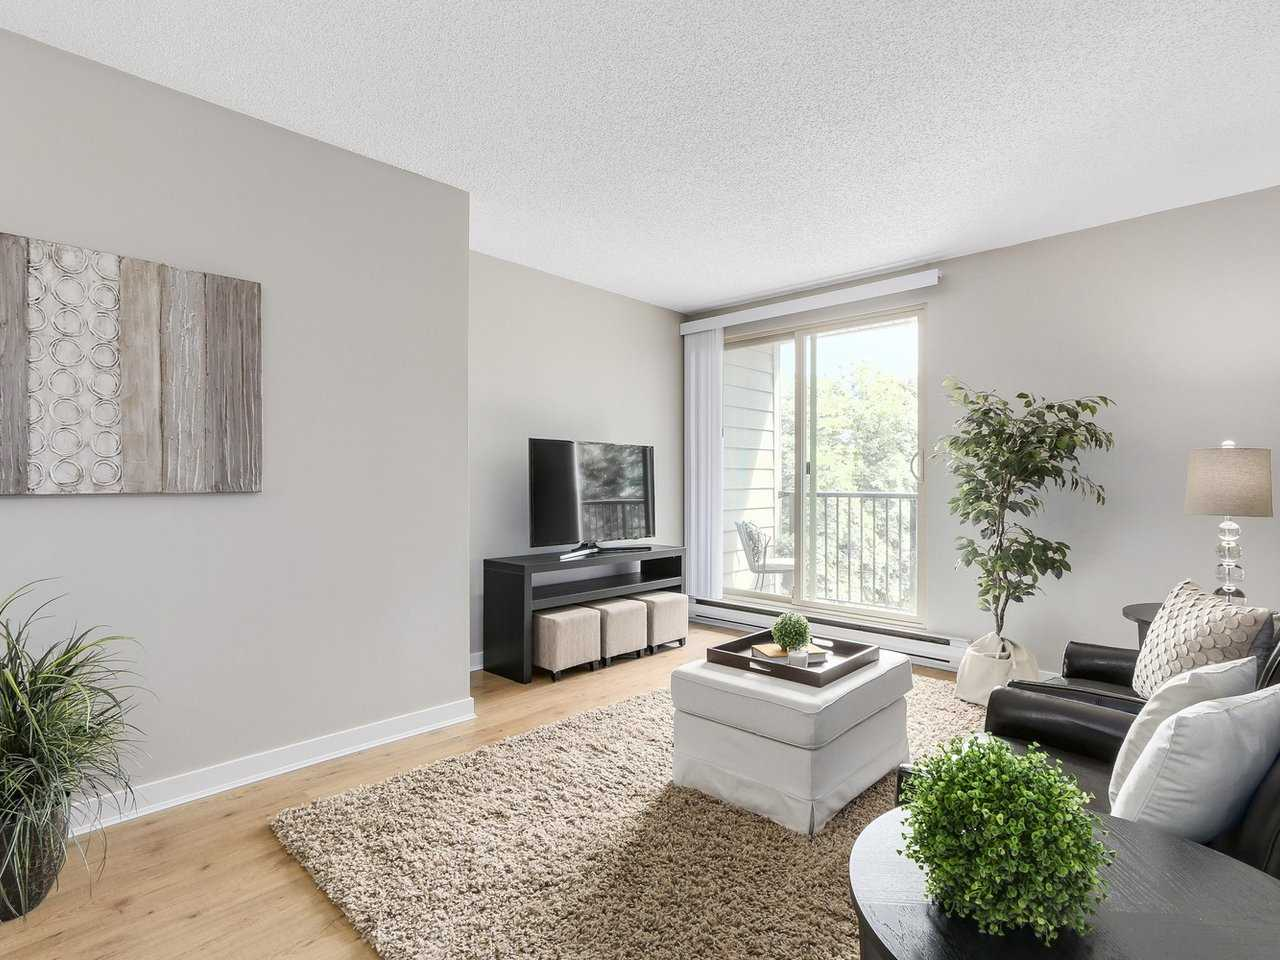 "Photo 4: 309 1121 HOWIE Avenue in Coquitlam: Central Coquitlam Condo for sale in ""THE WILLOWS"" : MLS(r) # R2179241"